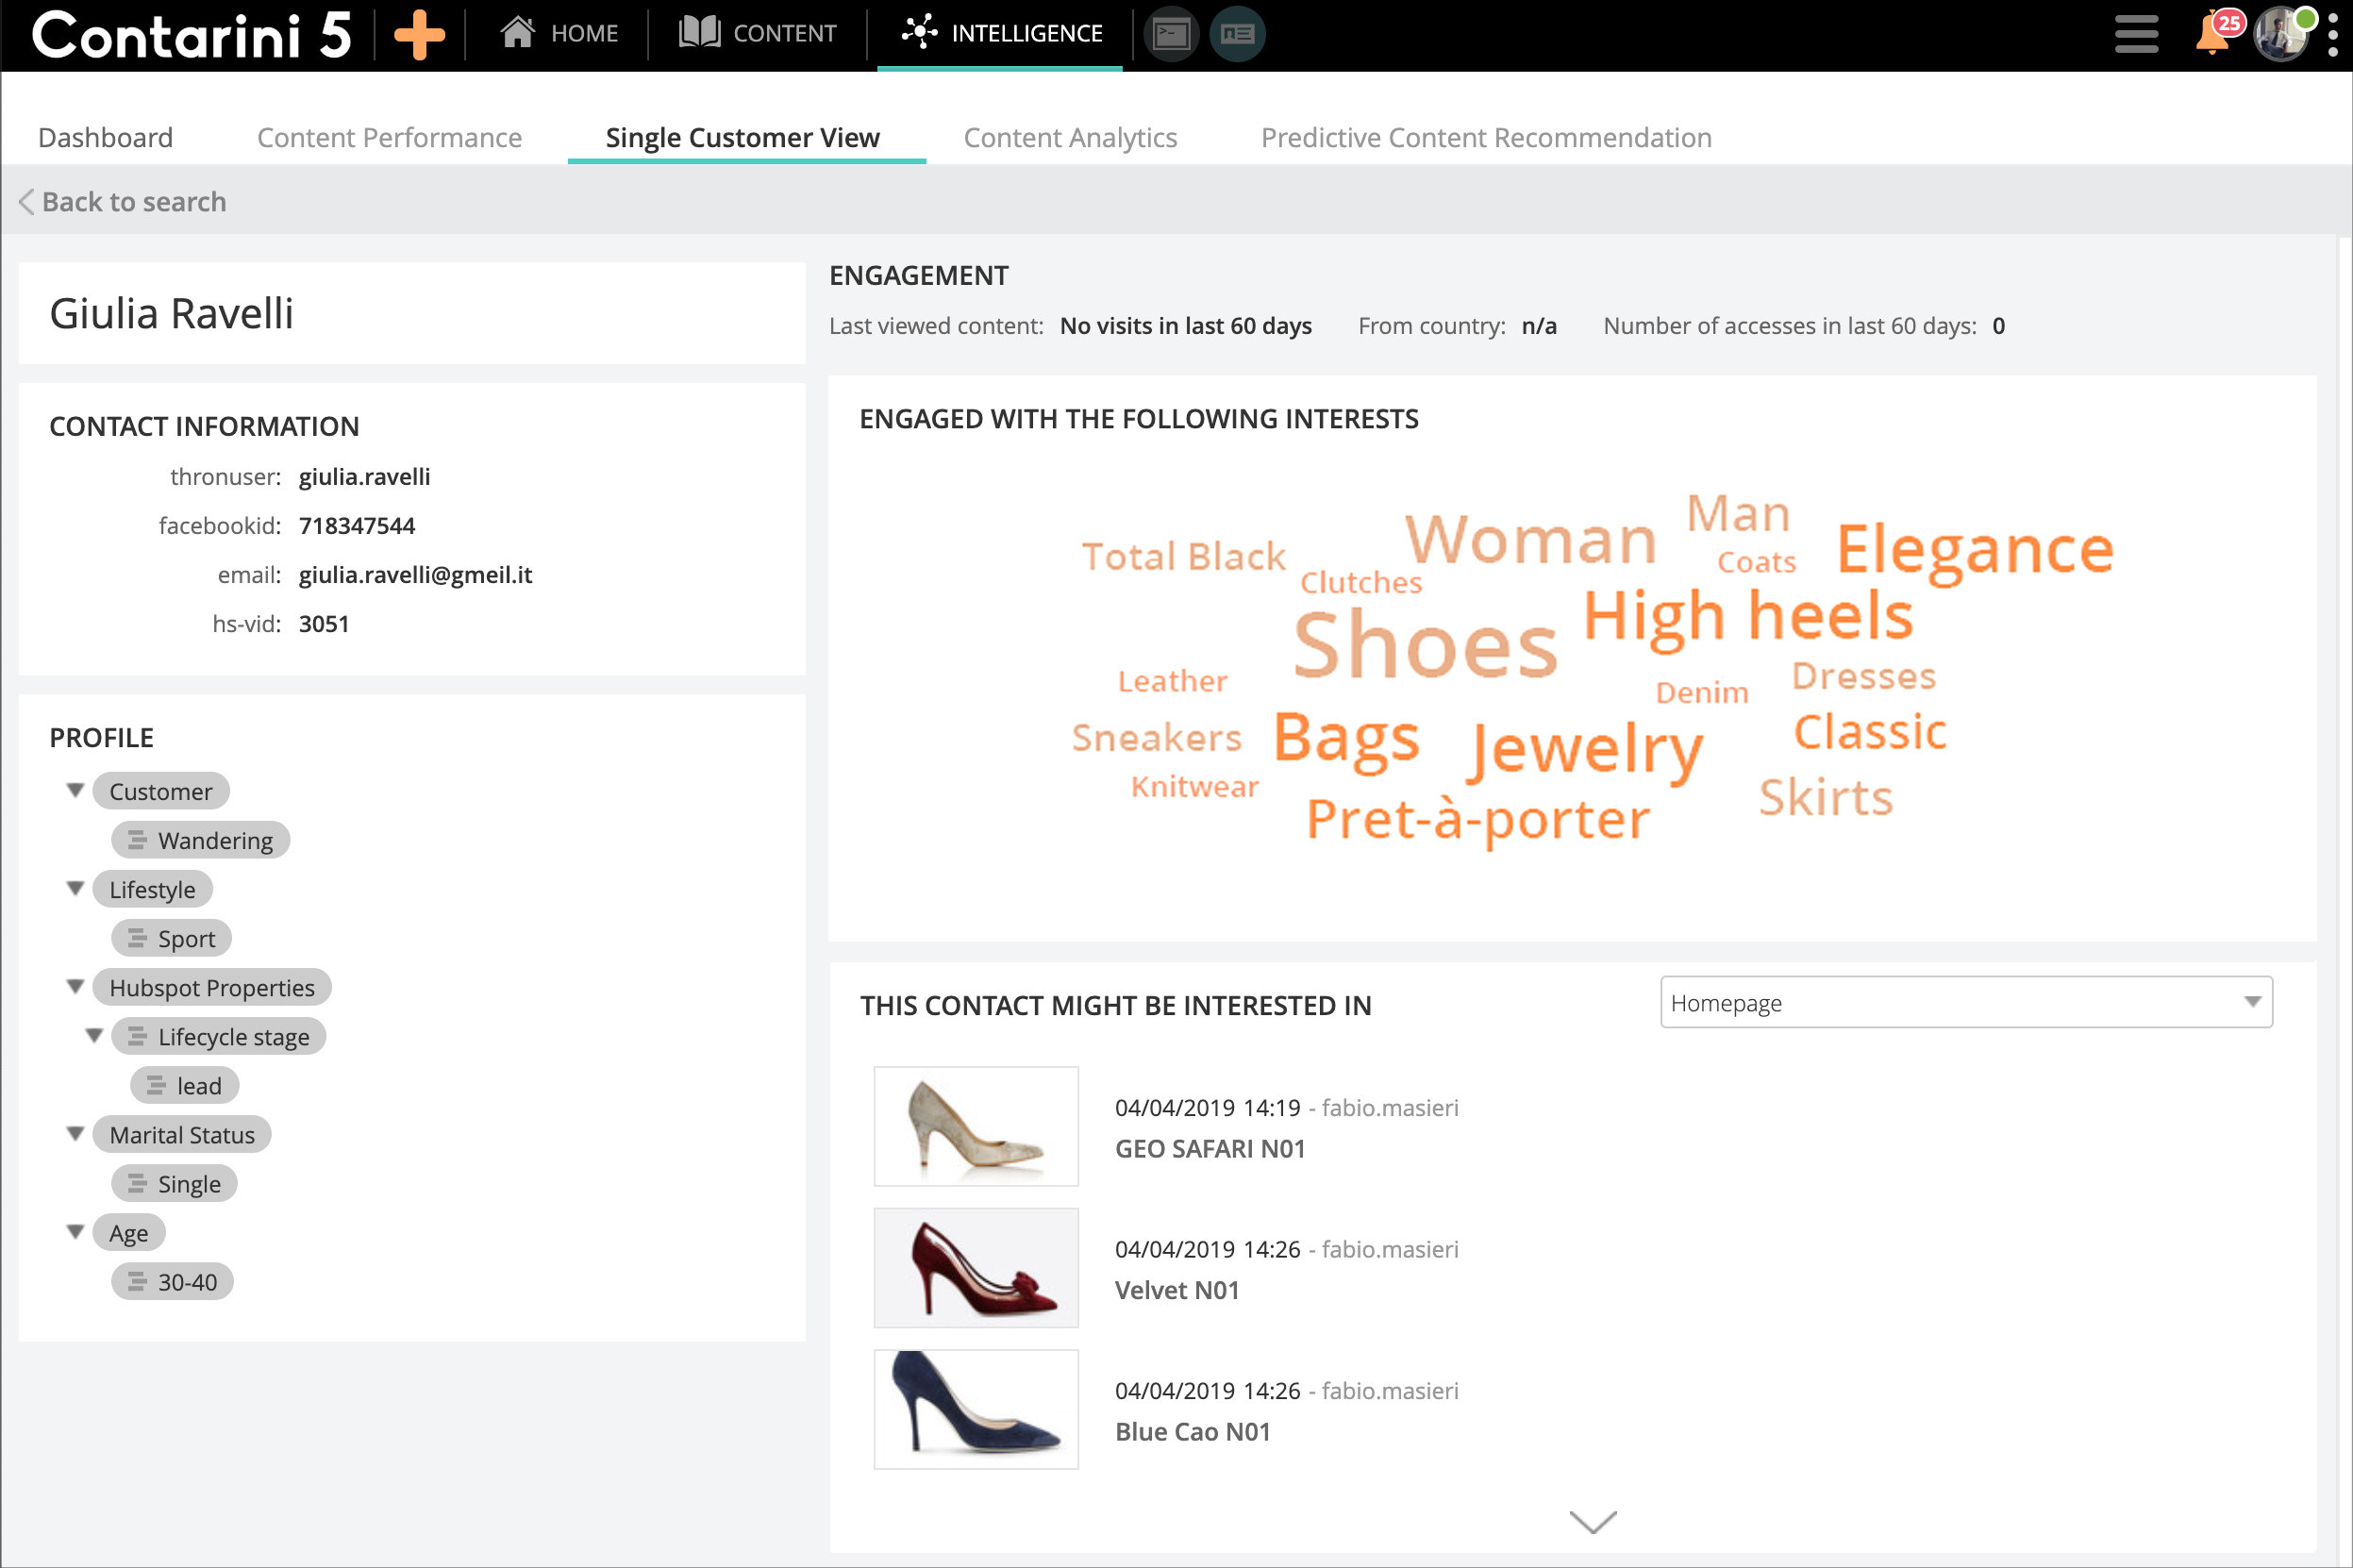 scv-intelligence-single-customer-view-fashion